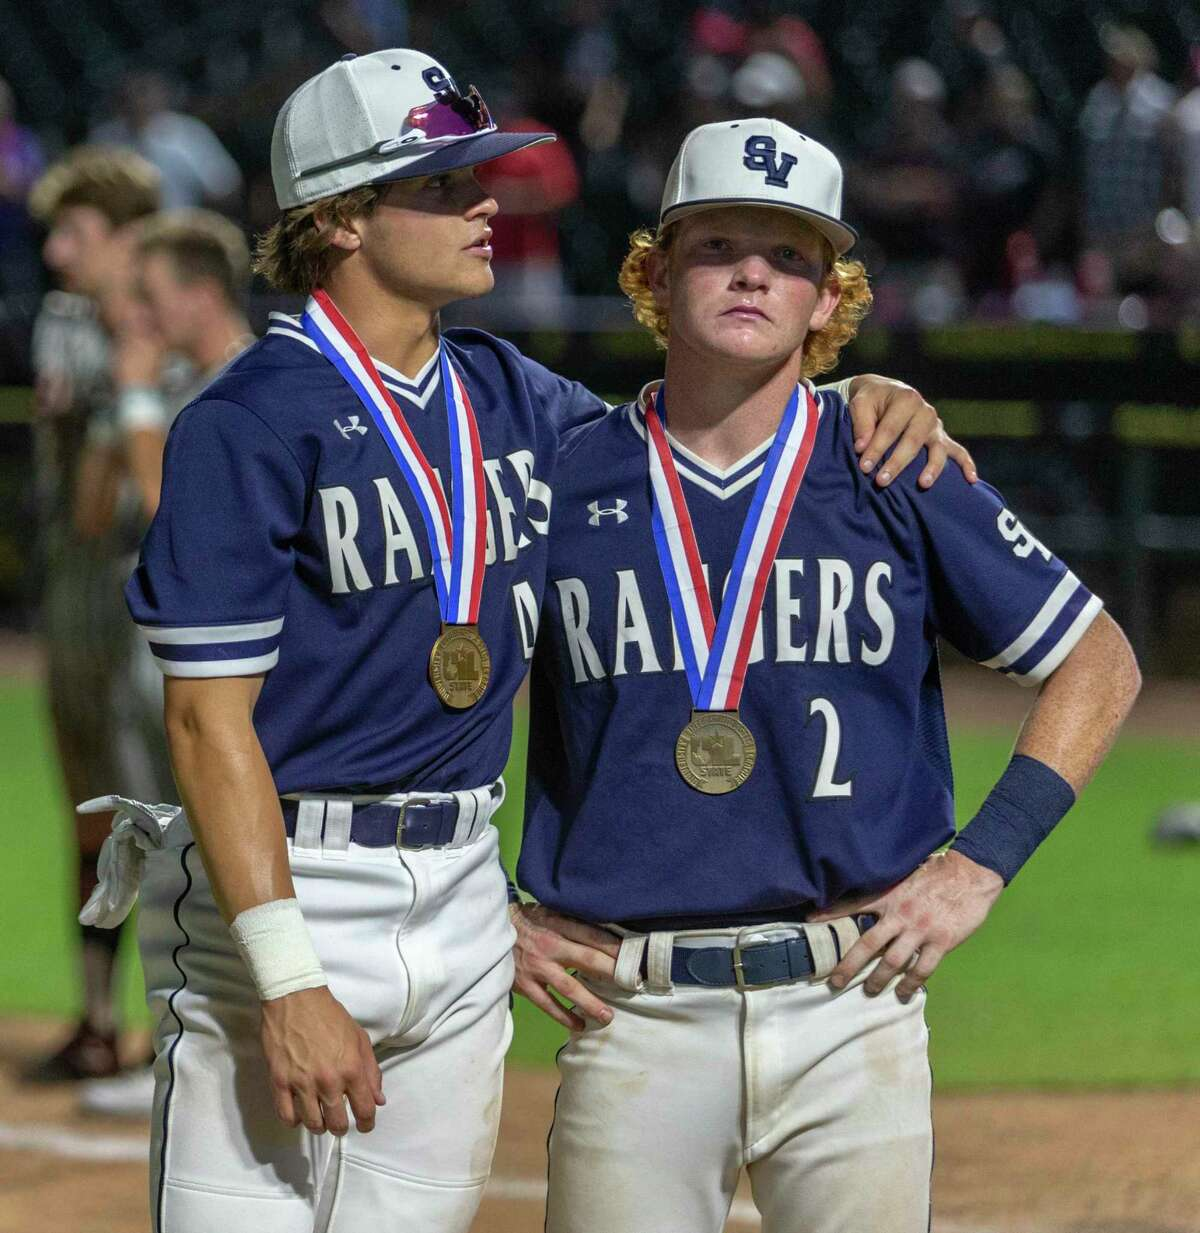 Smithson Valley baseball players Kasen Wells, left, and Ryan Ruff wear their UIL state semi-finalist medals Friday night, June 11, 2021 at the Dell Diamond in Round Rock after the Rangers lost to Rockwall-Heath.